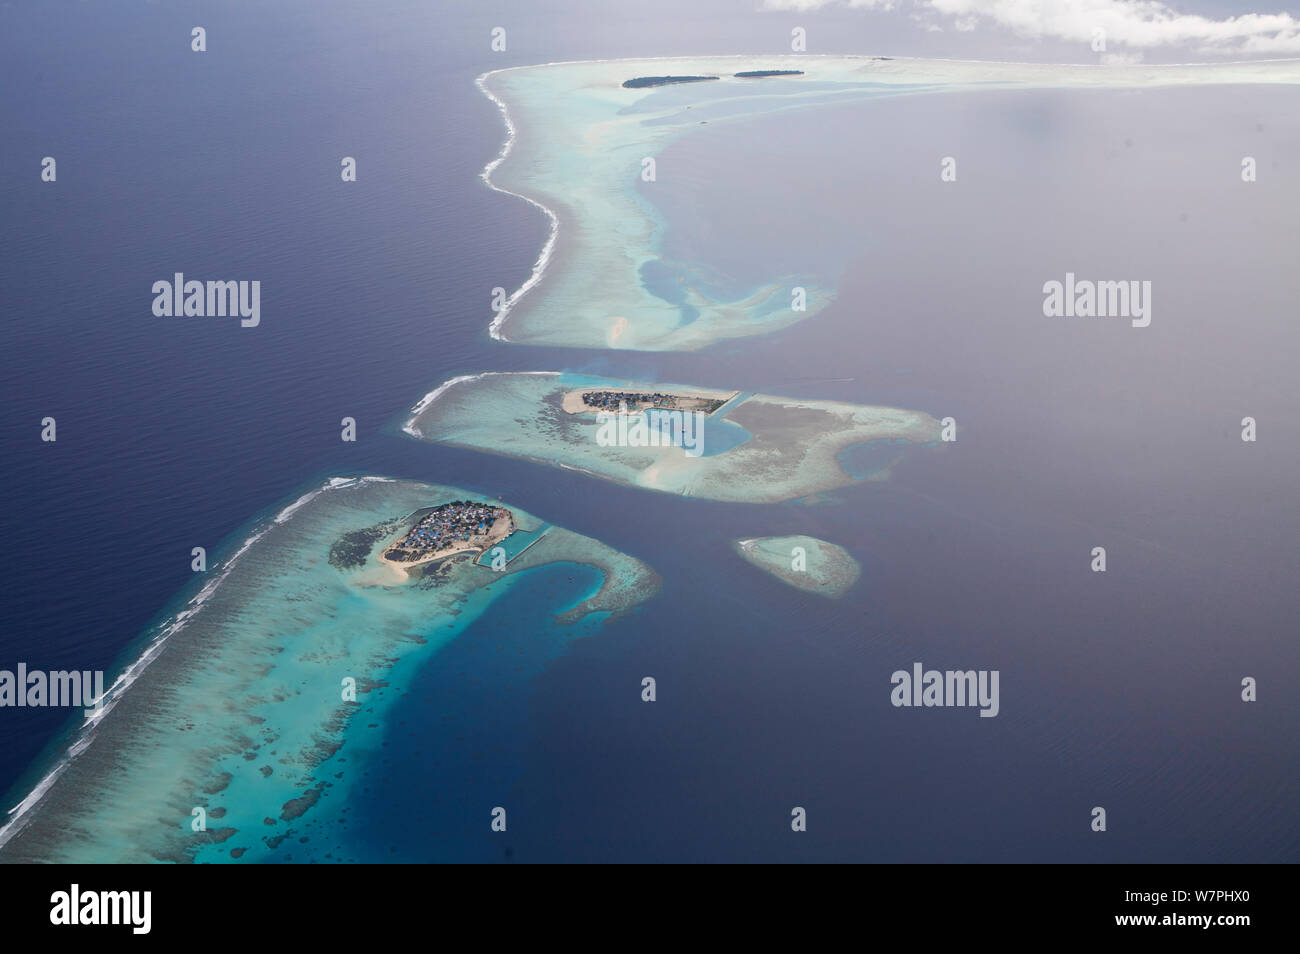 Aerial view of coral atolls, Maldives, December 2009 Stock Photo